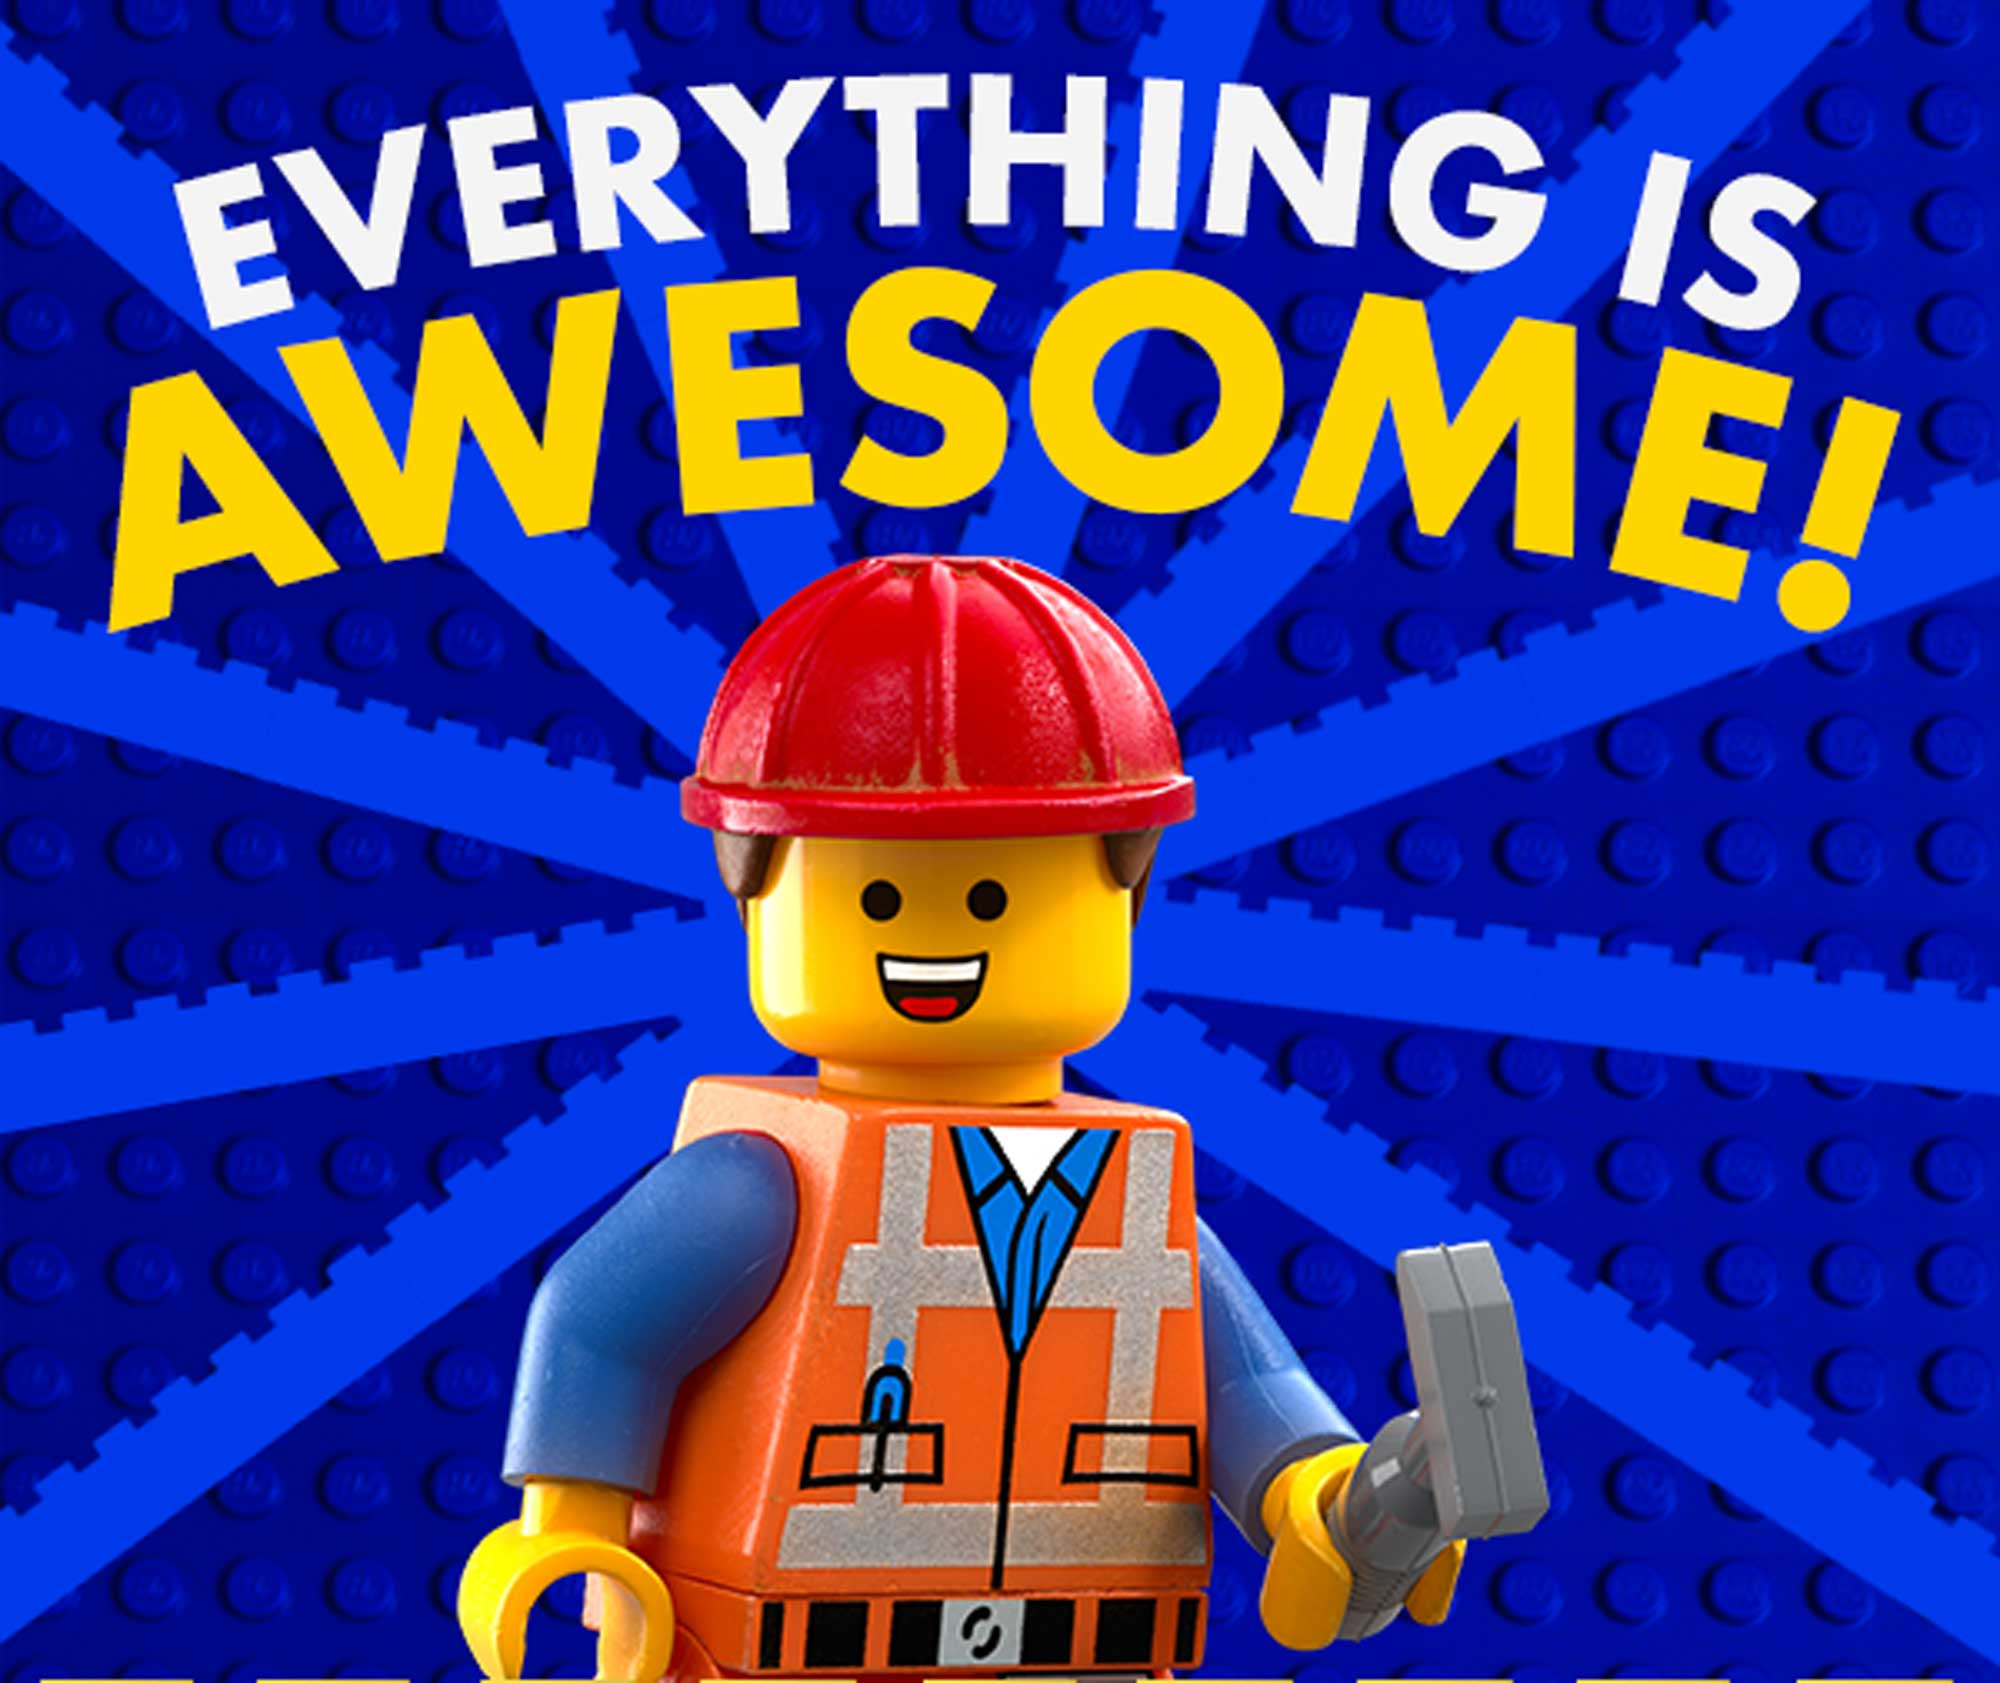 Episode 62: Everything Is Awesome